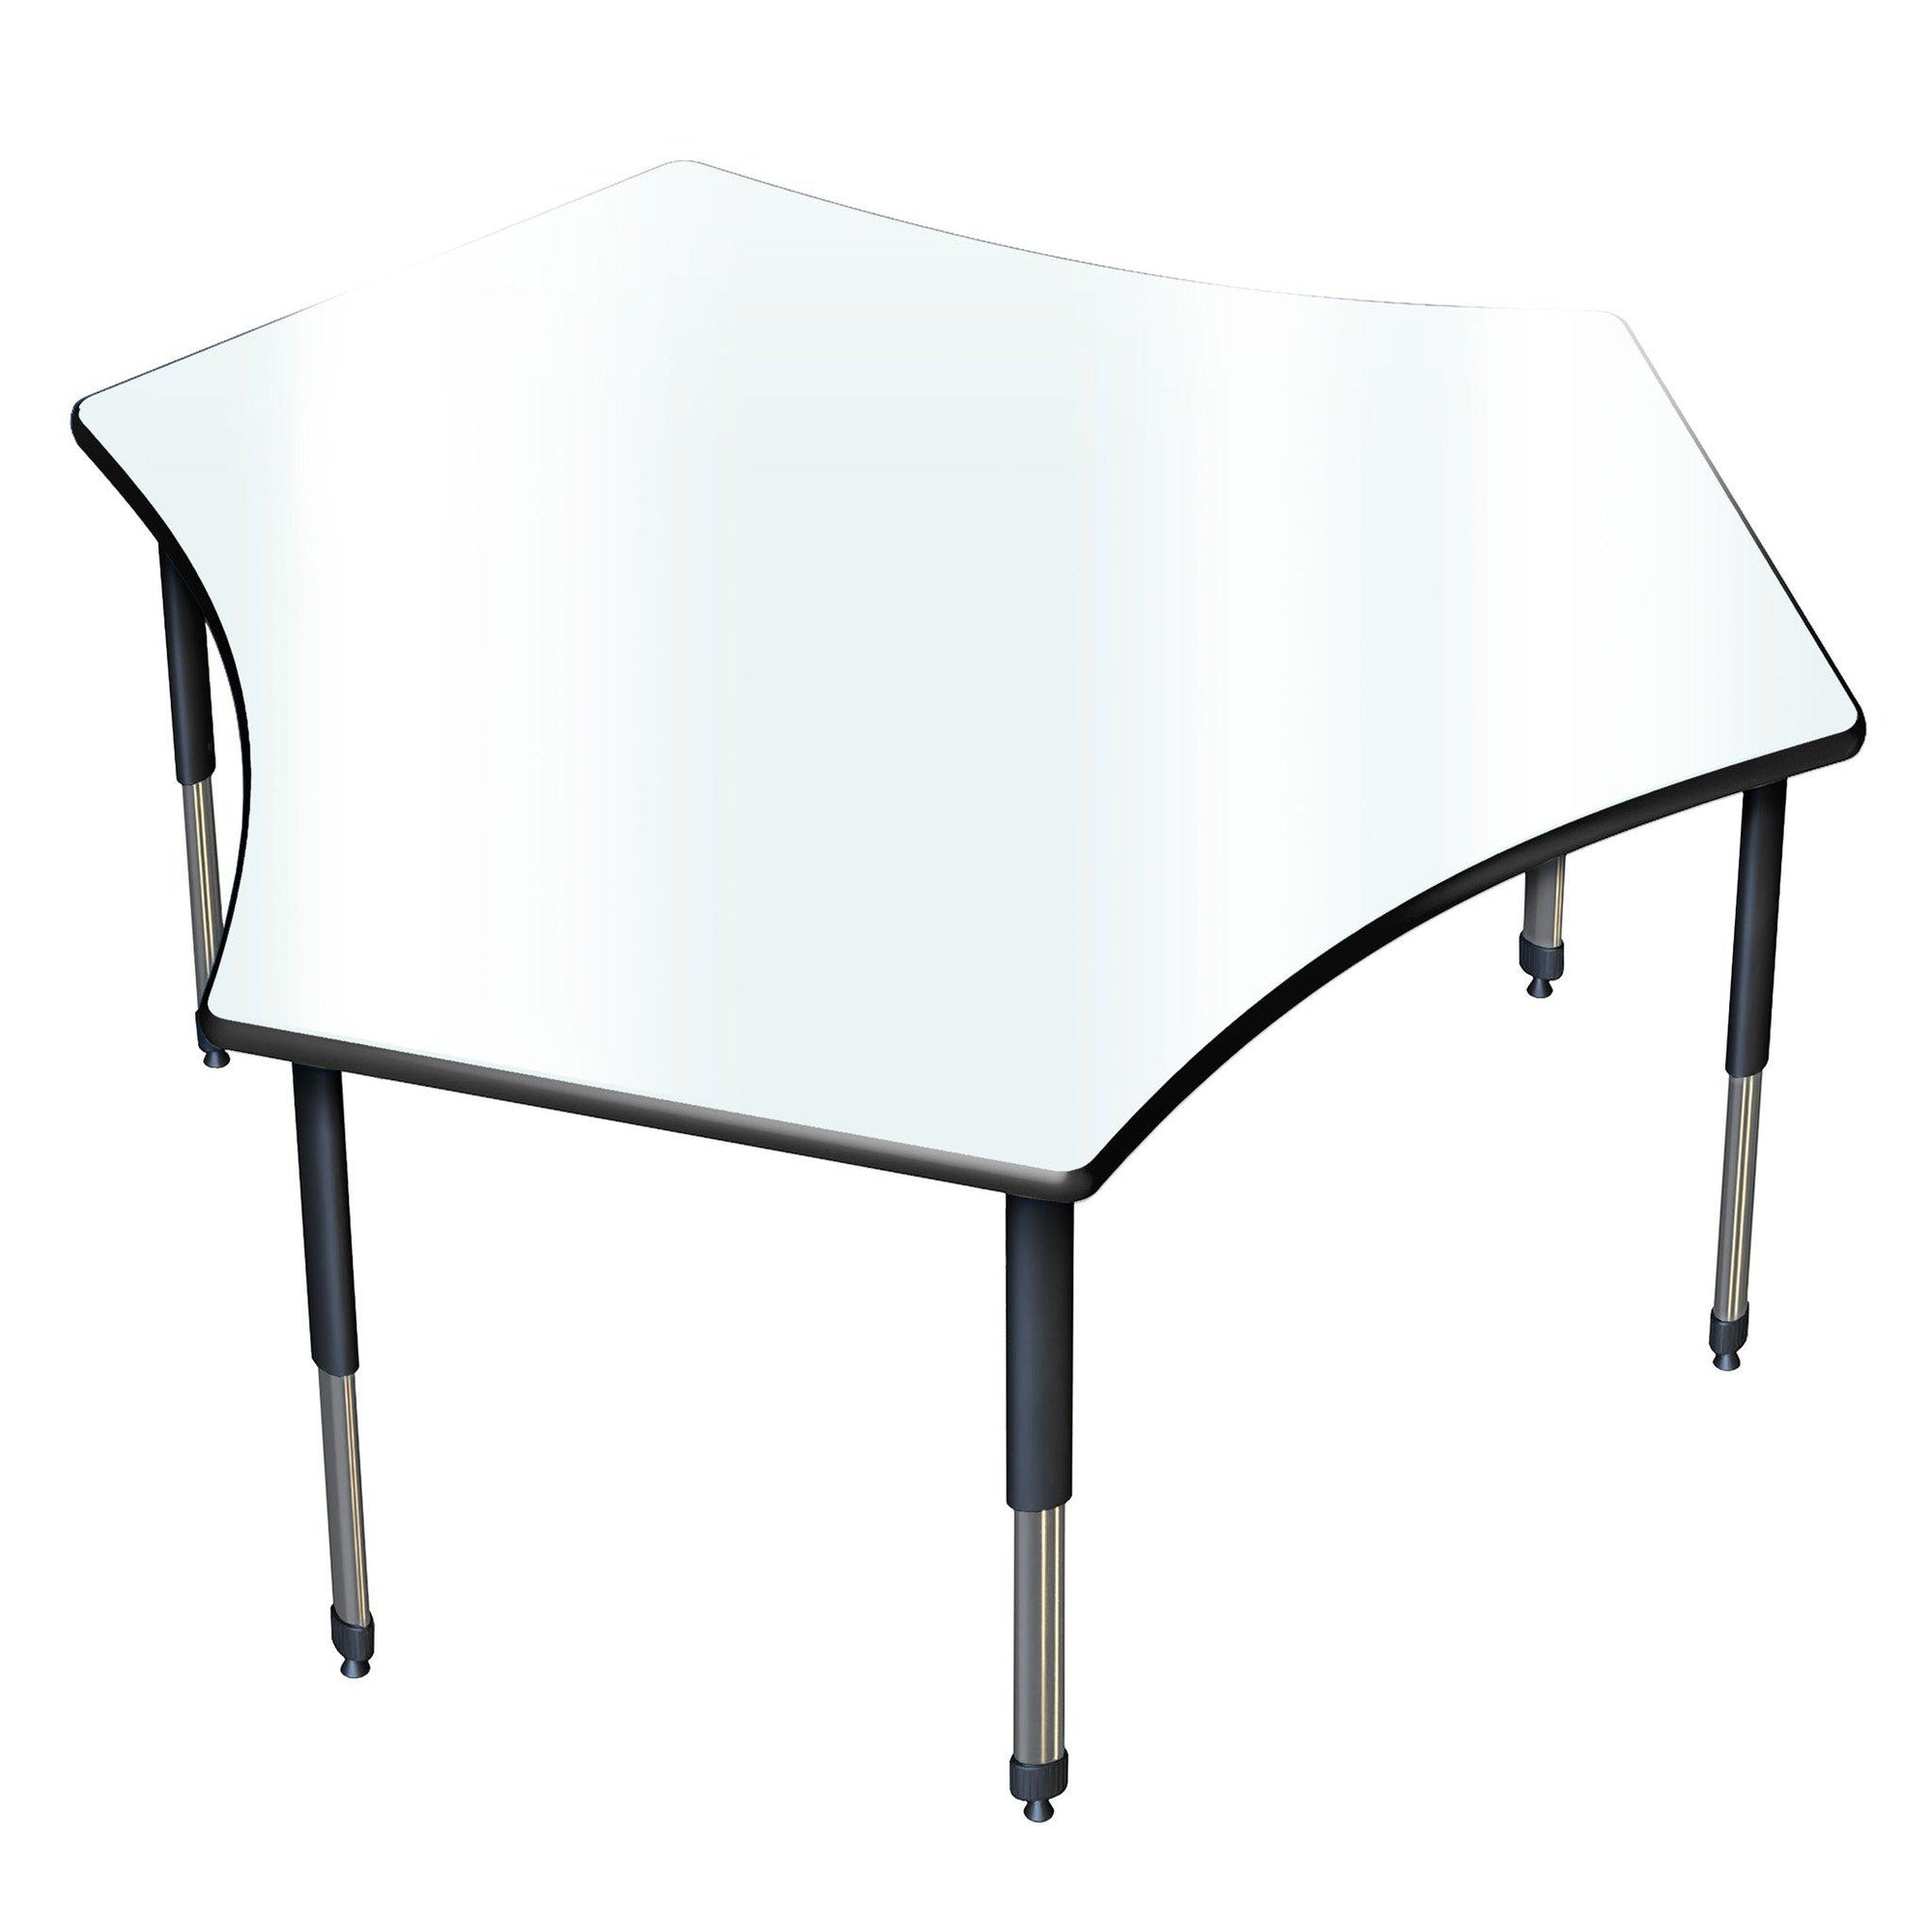 "Aero Dry Erase Activity Table, 60"" x 72"" Team, Oval Adjustable Height Legs"